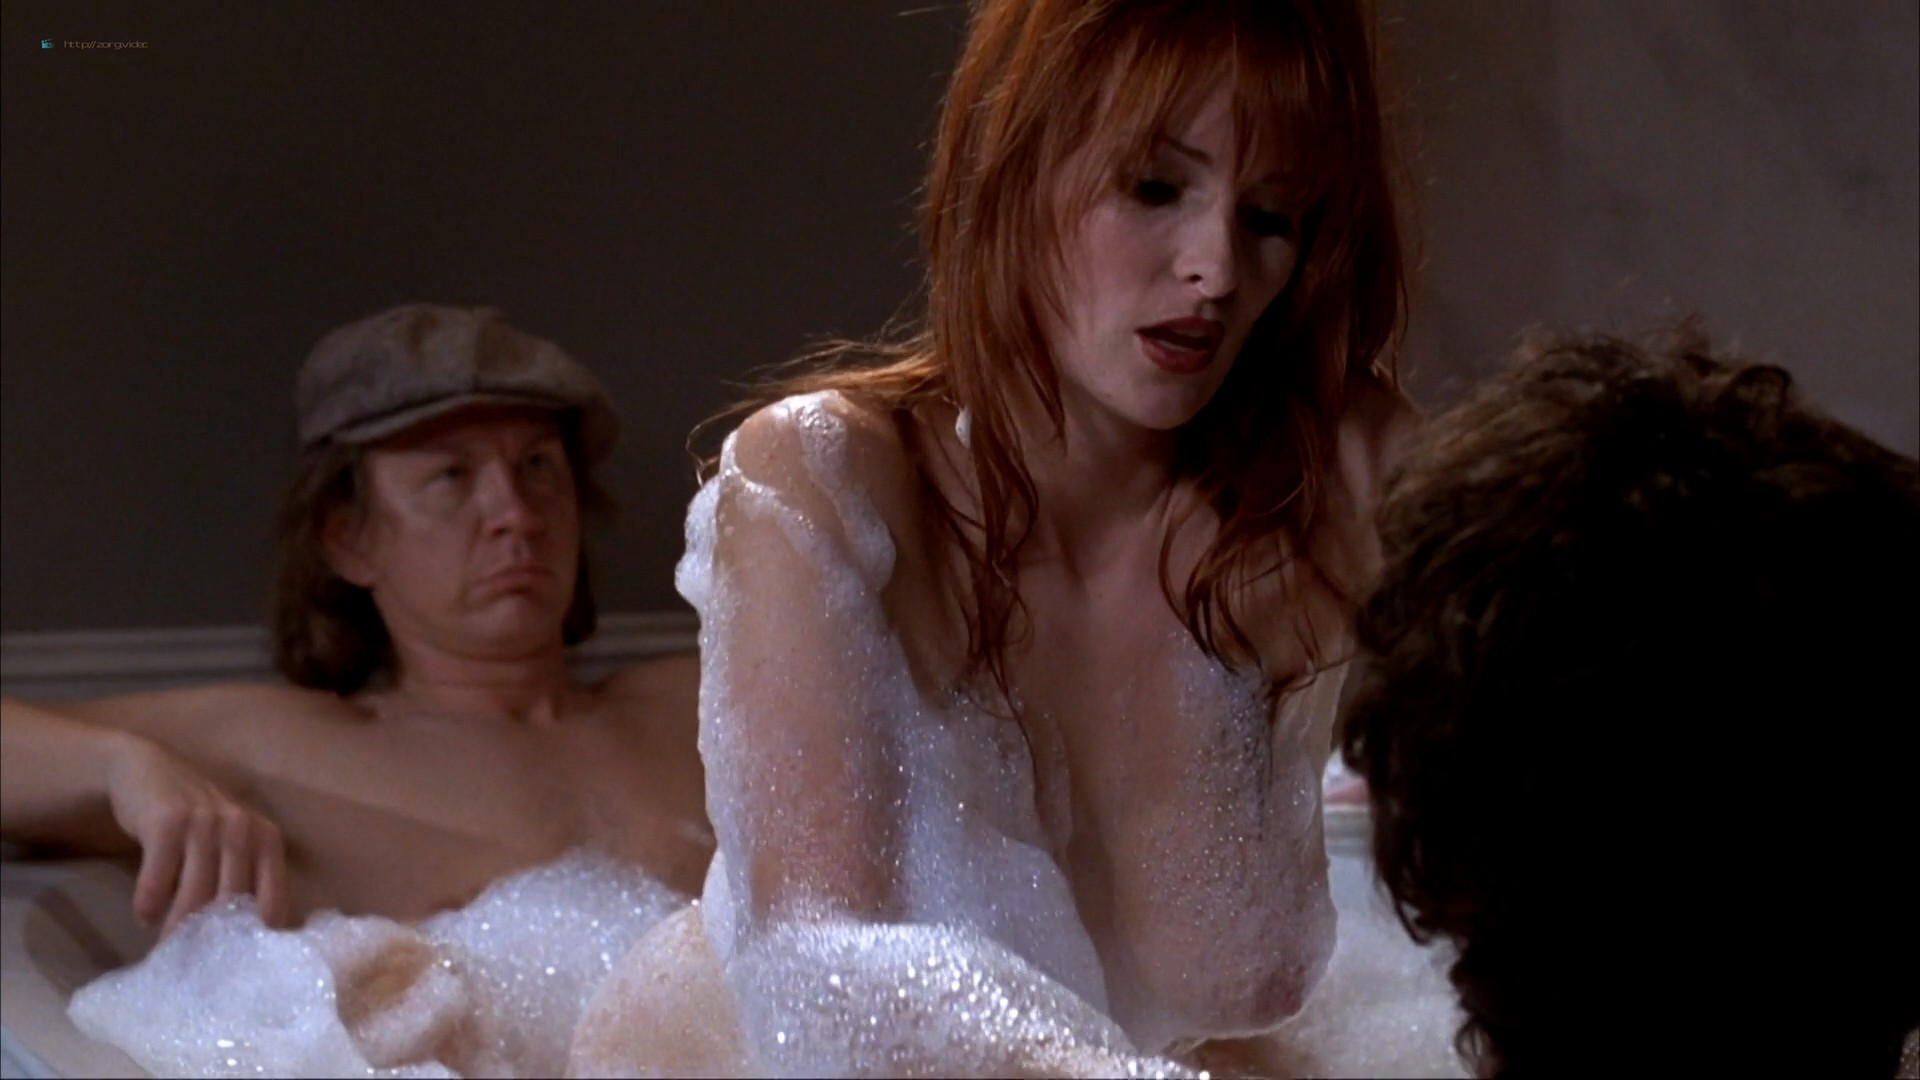 Melanie Good nude Jenna Jameson nude full frontal - Private Parts (1997) 1080p BluRay (6)